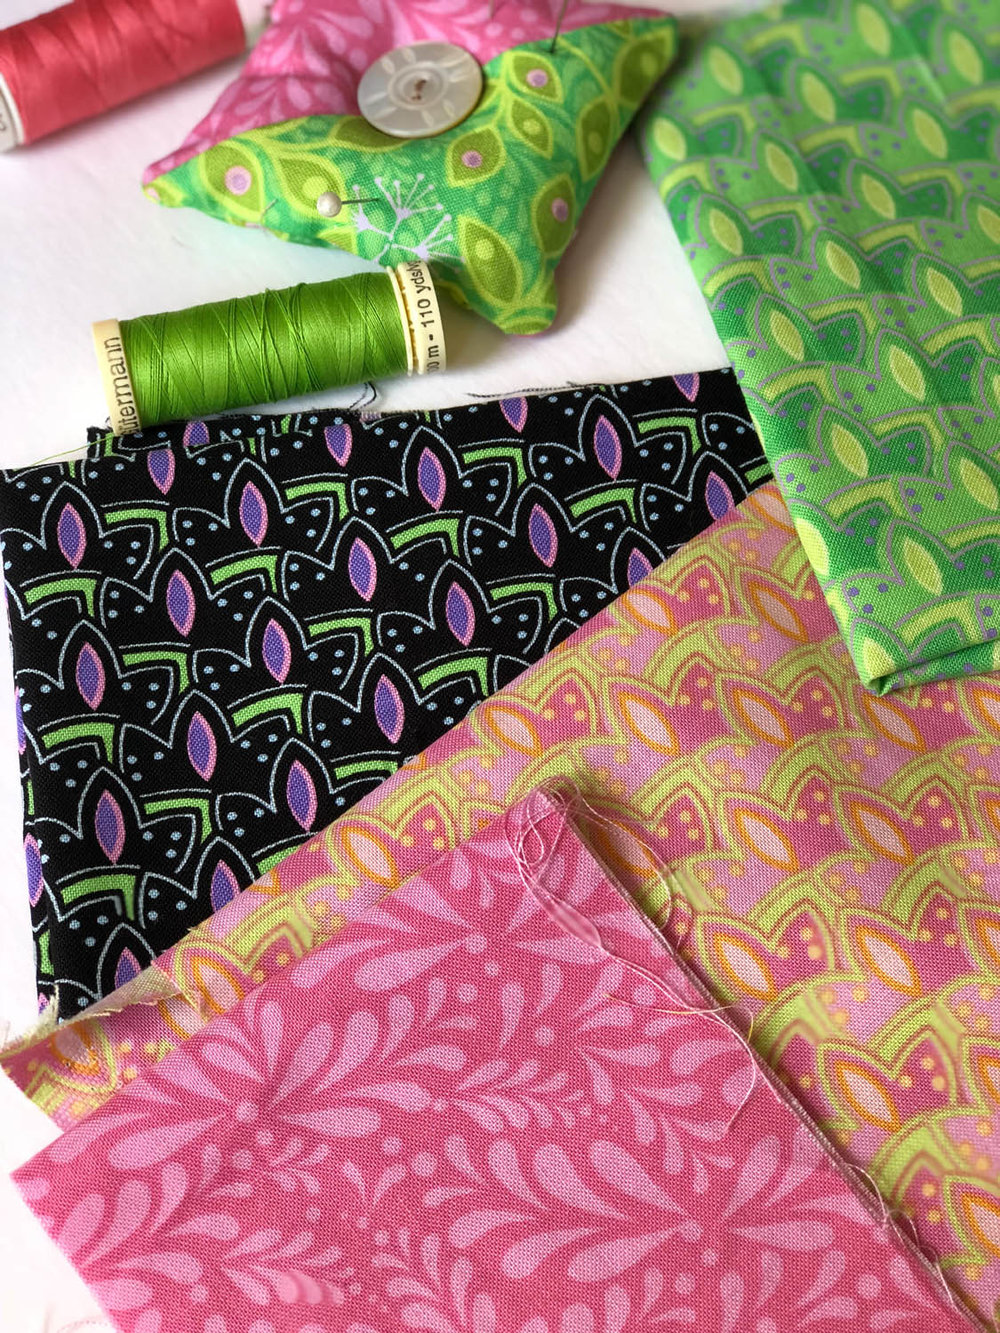 scraps of fabric and quilting thread